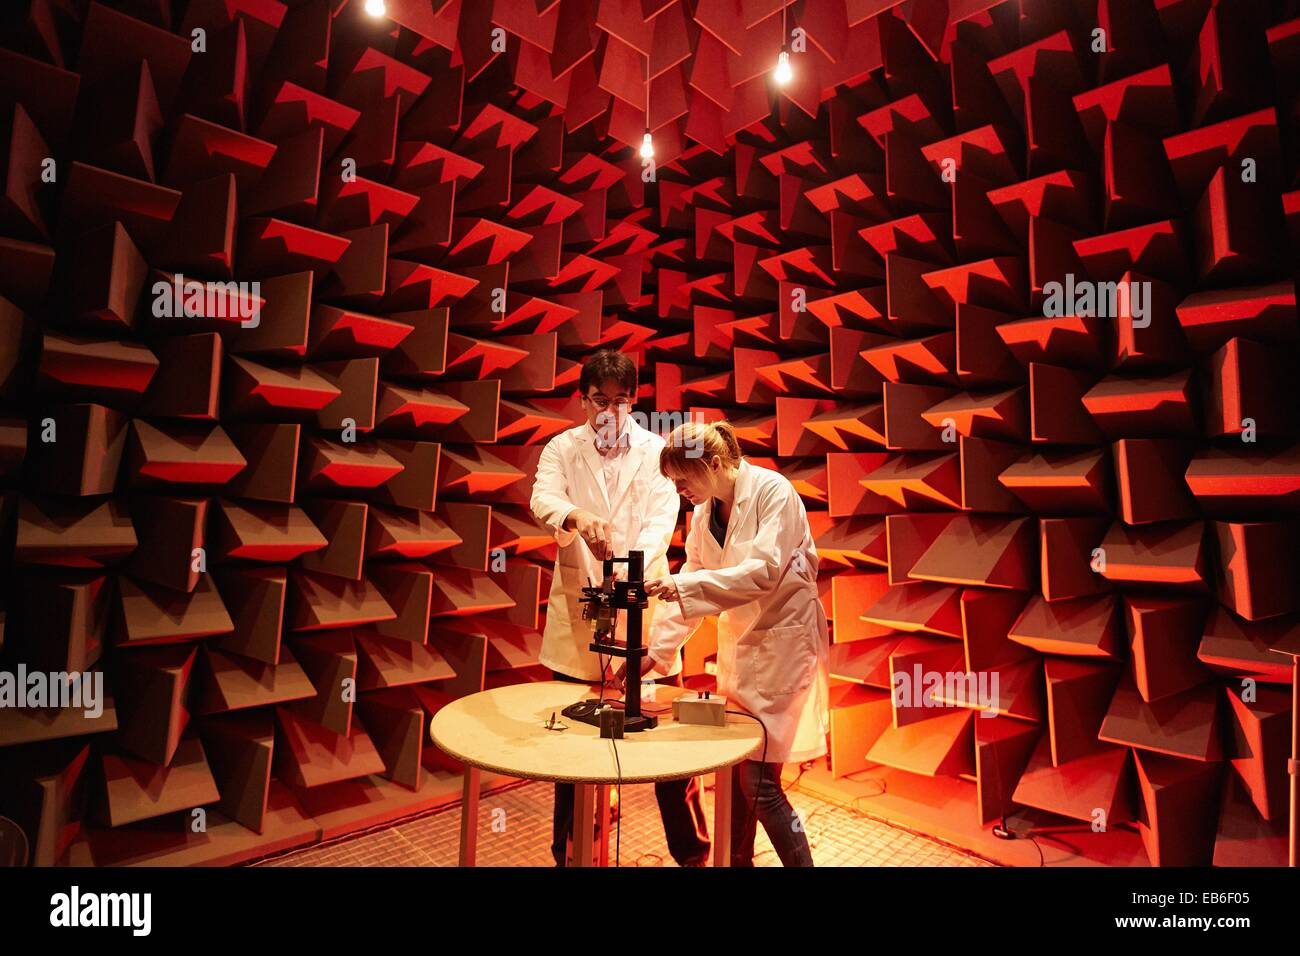 Acoustic chamber emc telecom lab certification low voltage stock acoustic chamber emc telecom lab certification low voltage electrical electronic products technological services to 1betcityfo Image collections